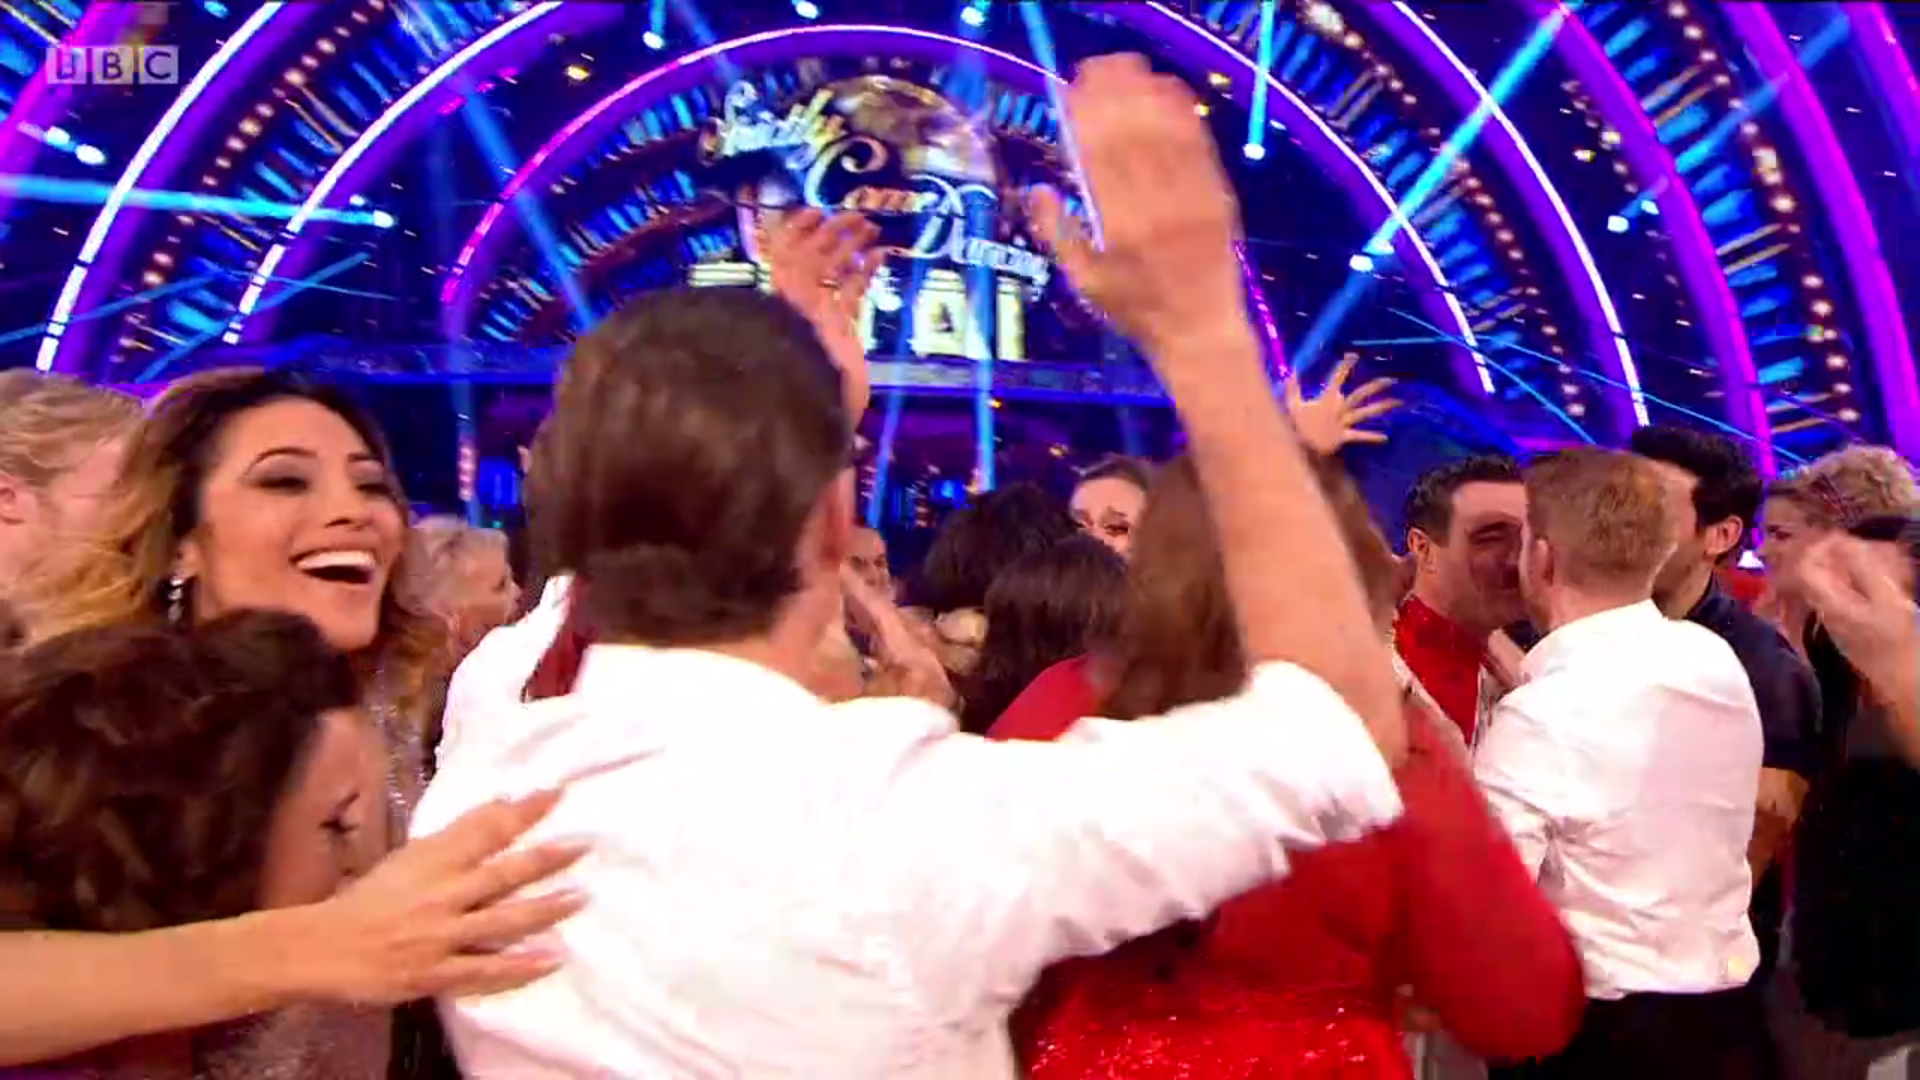 Did you see Strictly Come Dancing's Karen Clifton and Kevin Clifton show of affection during the final?